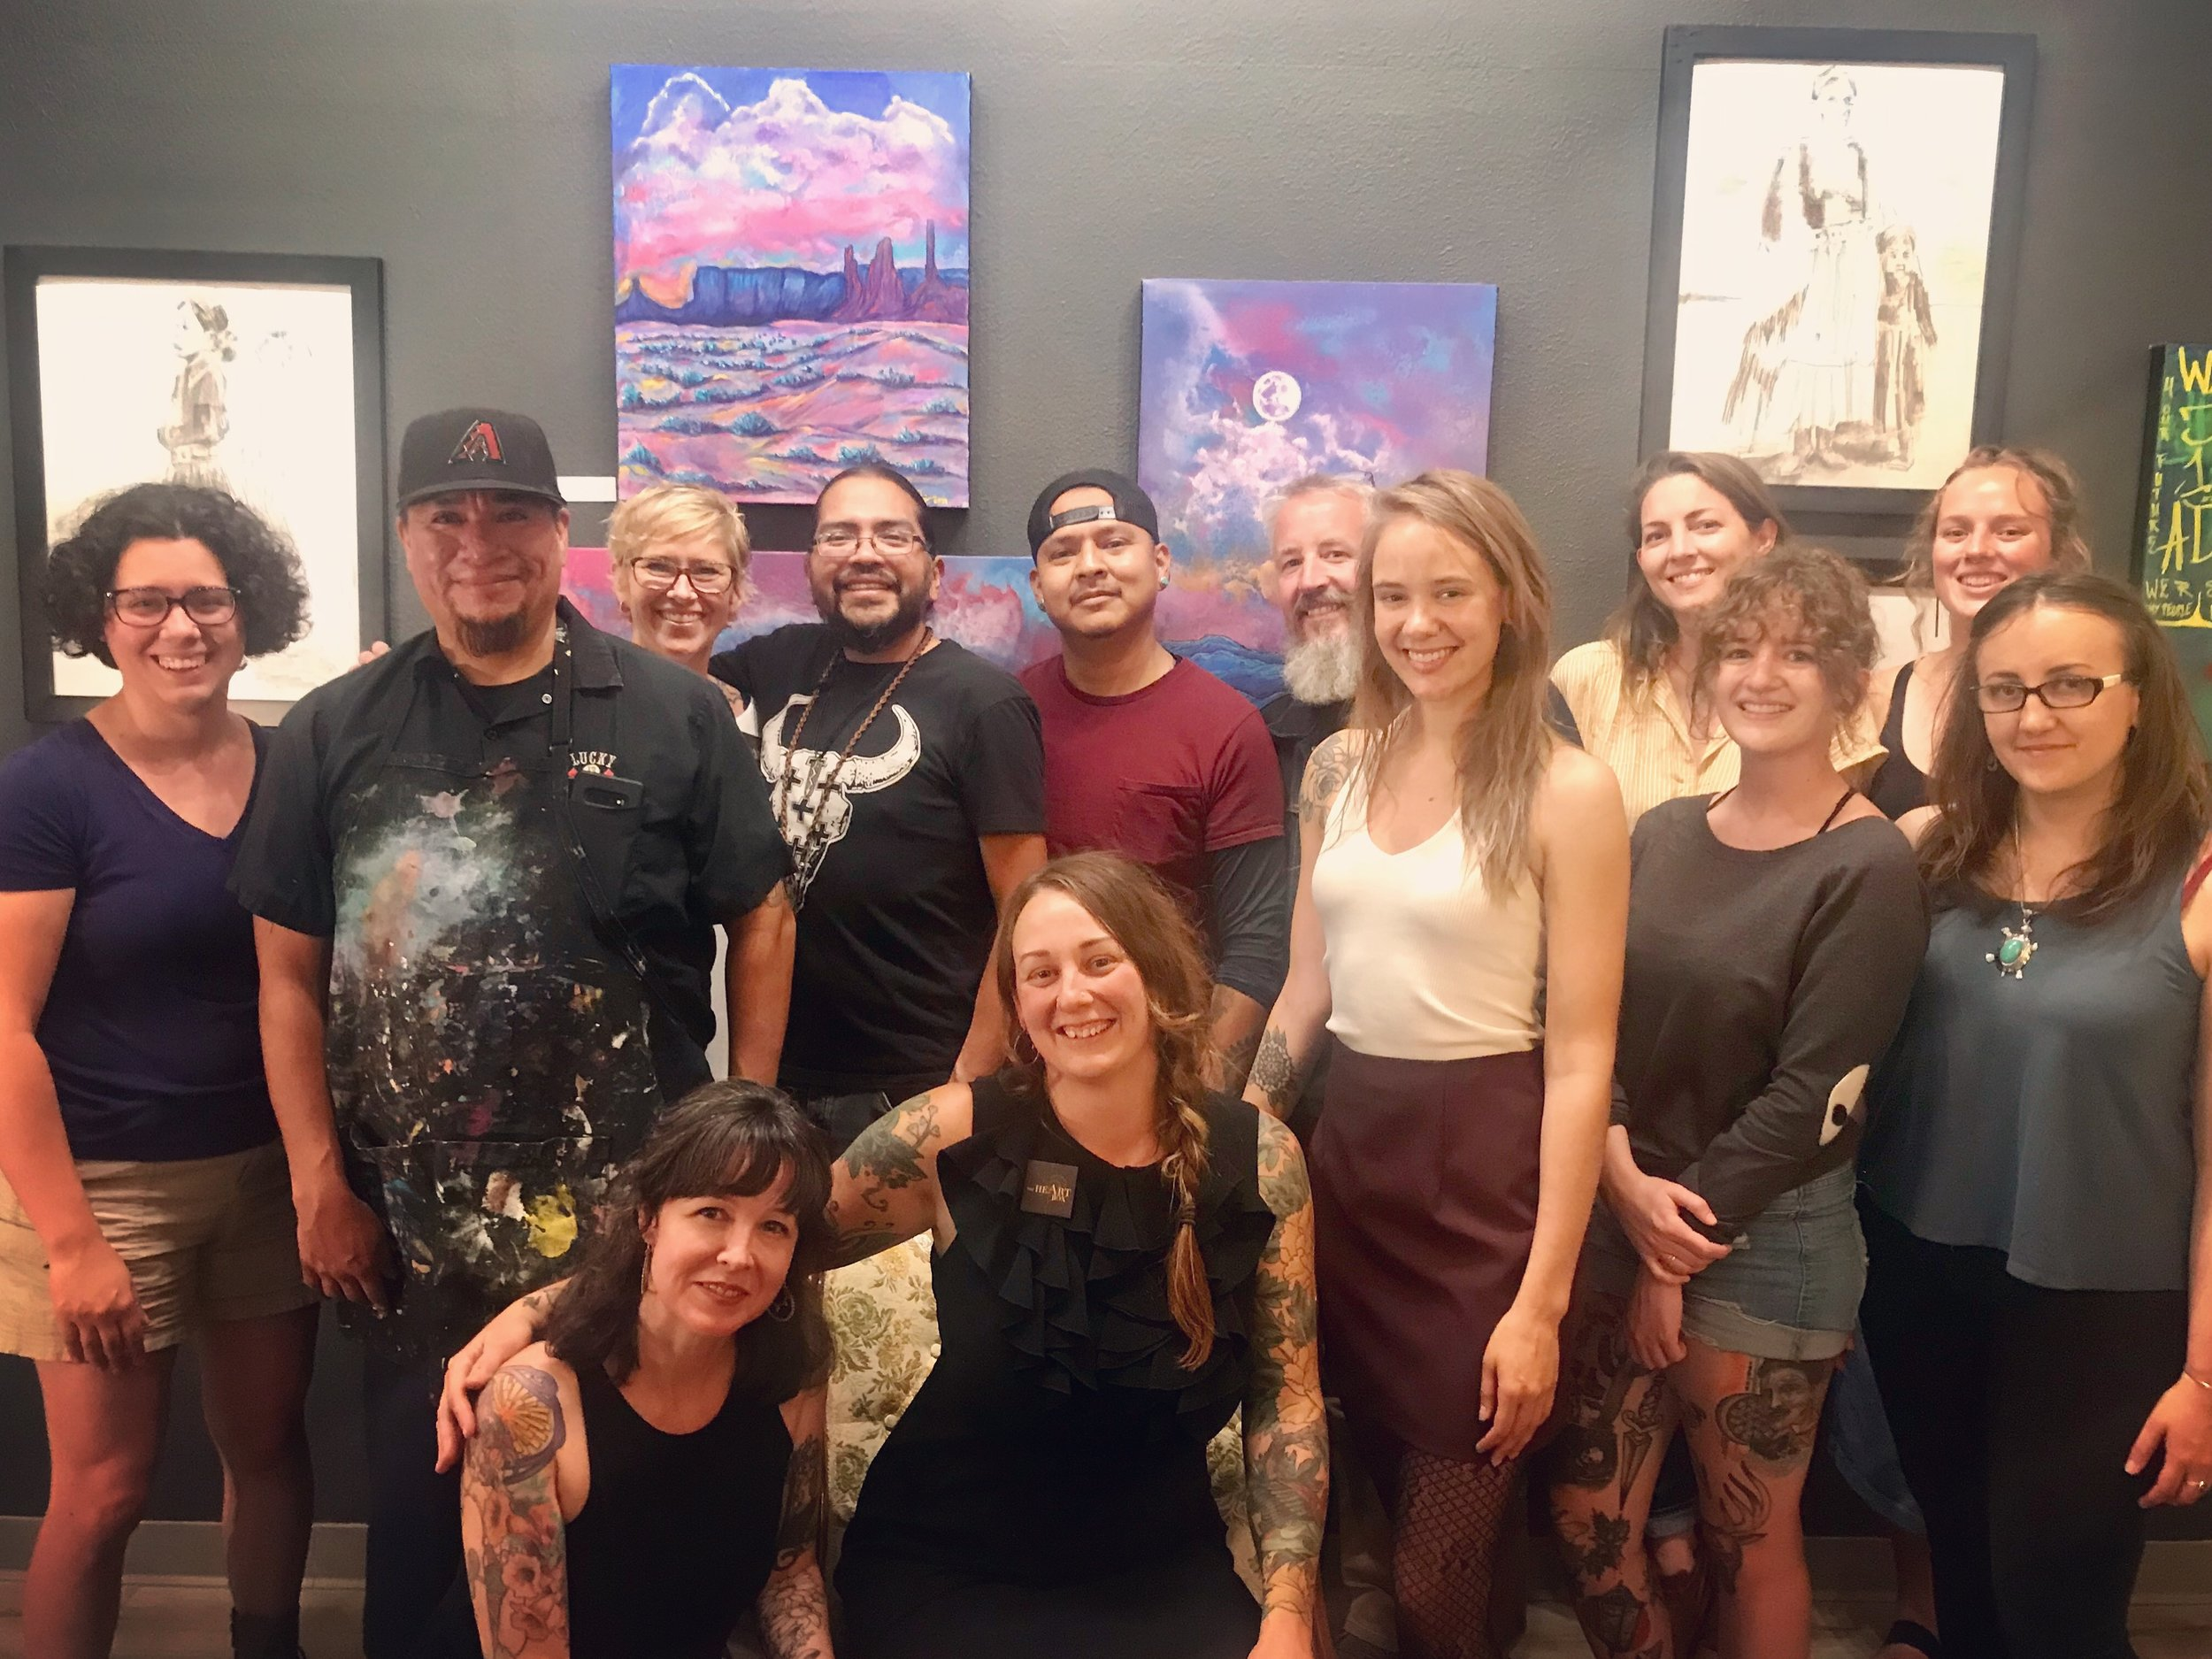 A small collection of all the artists who have contributed to The HeArt Box throughout the year. Photo taken on First Friday Artwalk, August 2nd, 2019.  Pictured from Left to Right: Gina Purri, Jerrel Singer, Katy Kyle, Jonah Hill, Nate B., Stephen Saunders, Raemy Winton, Ava Miller, Malory Donahue, MacKenzie Chase, Alexandra Melina and seated in front Jada Santoro and Jill Sans.